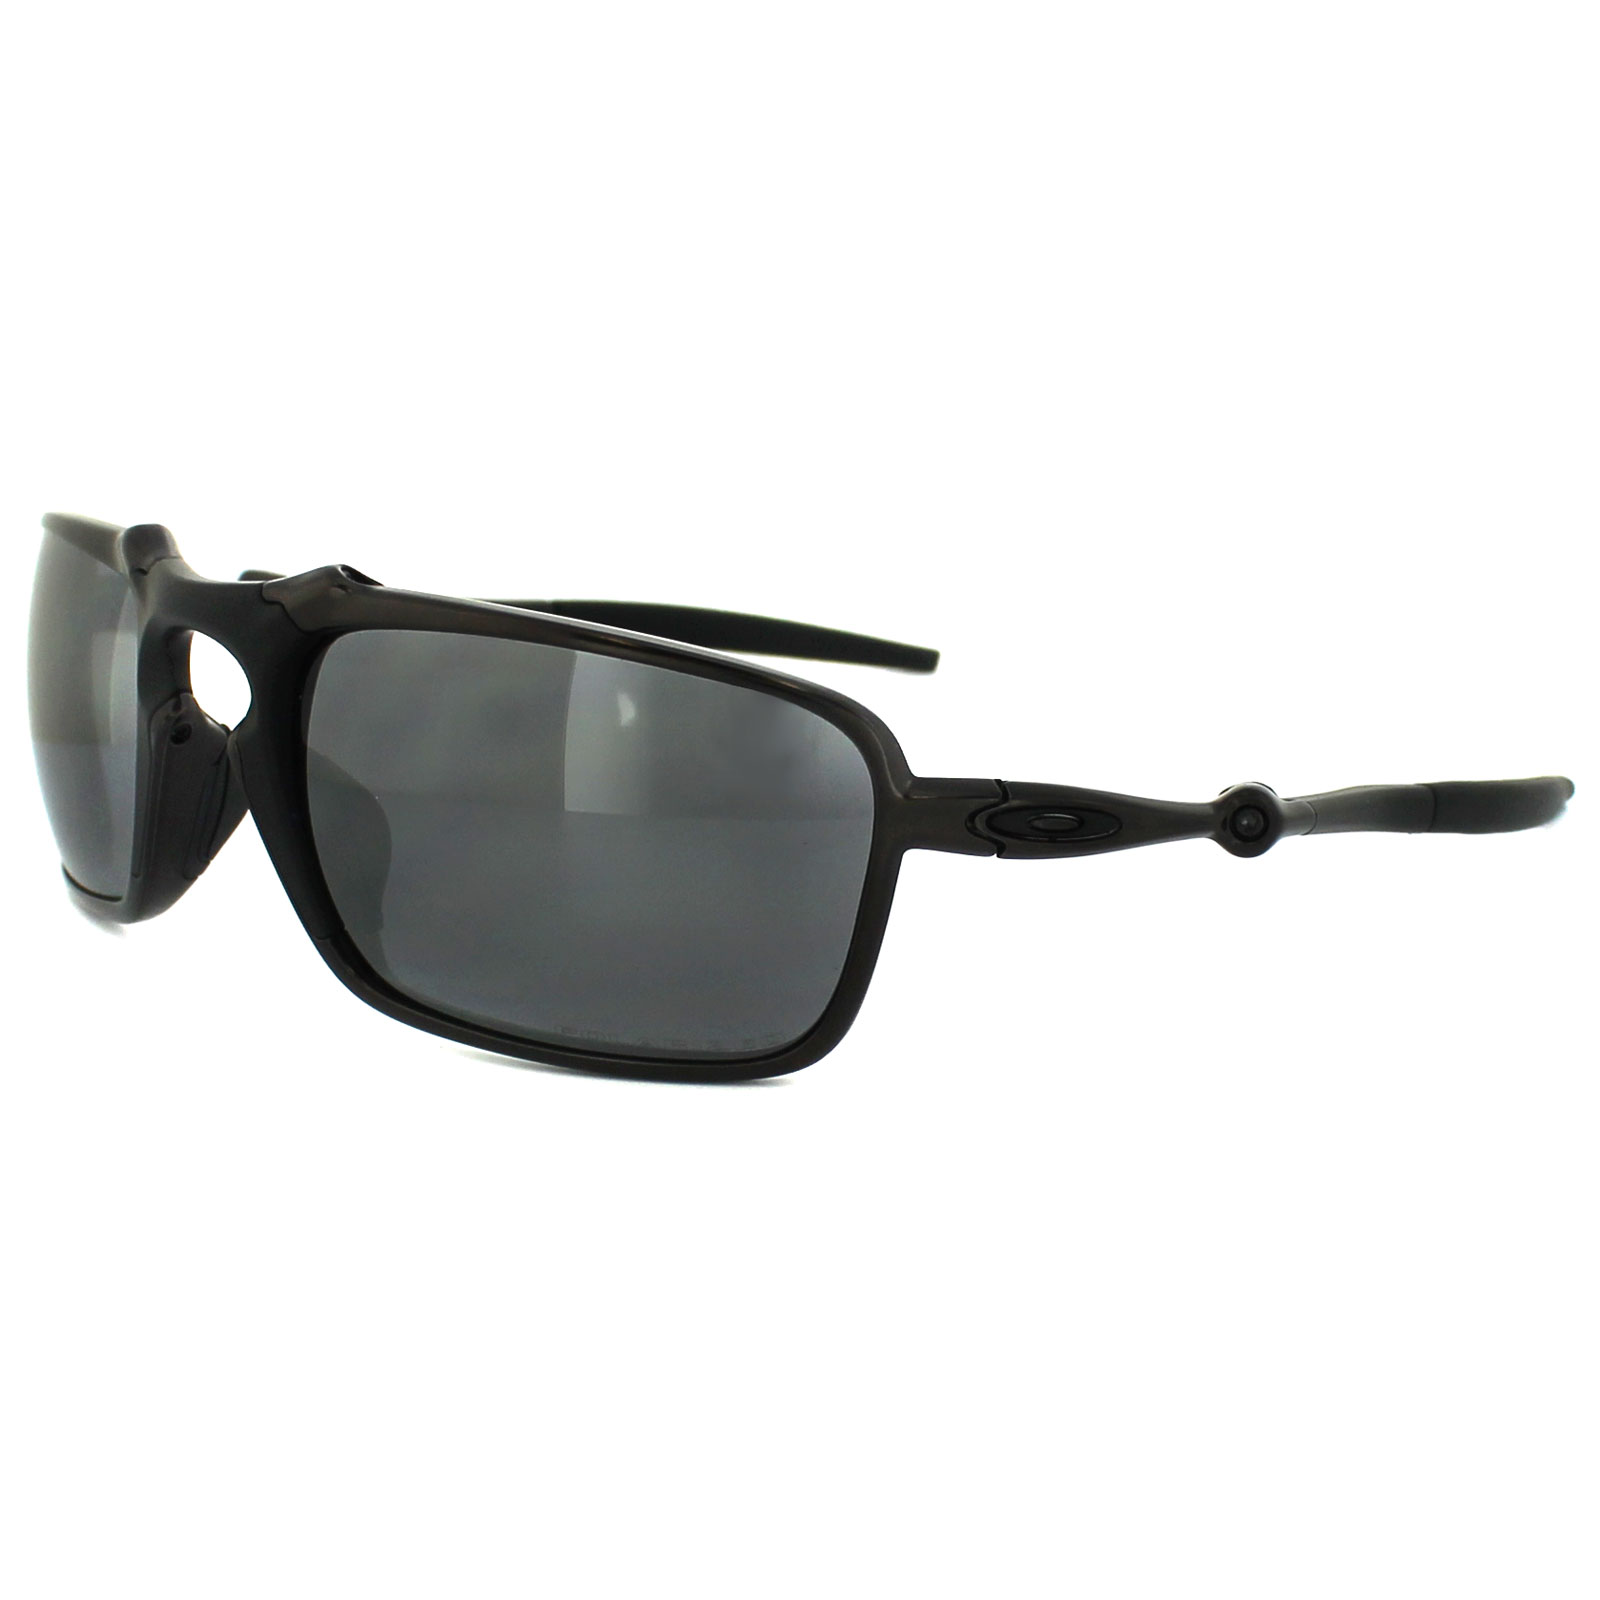 Cheap Oakley Badman Sunglasses Discounted Sunglasses